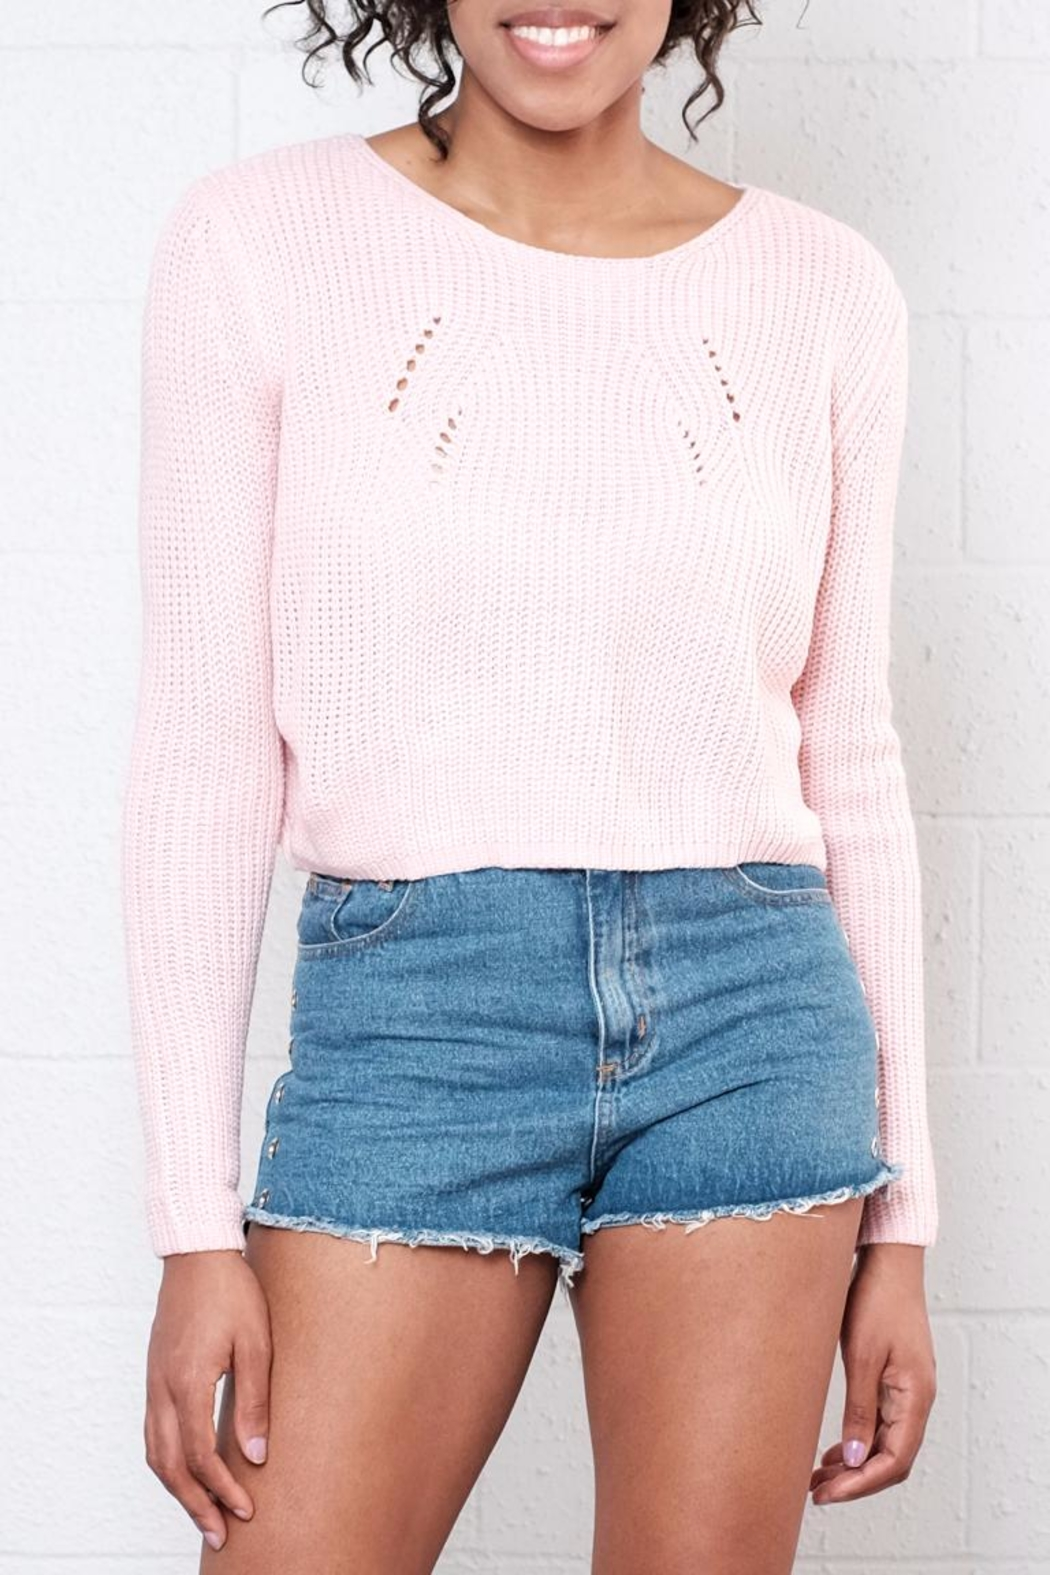 Moon Collection Cropped Knit Sweater - Main Image